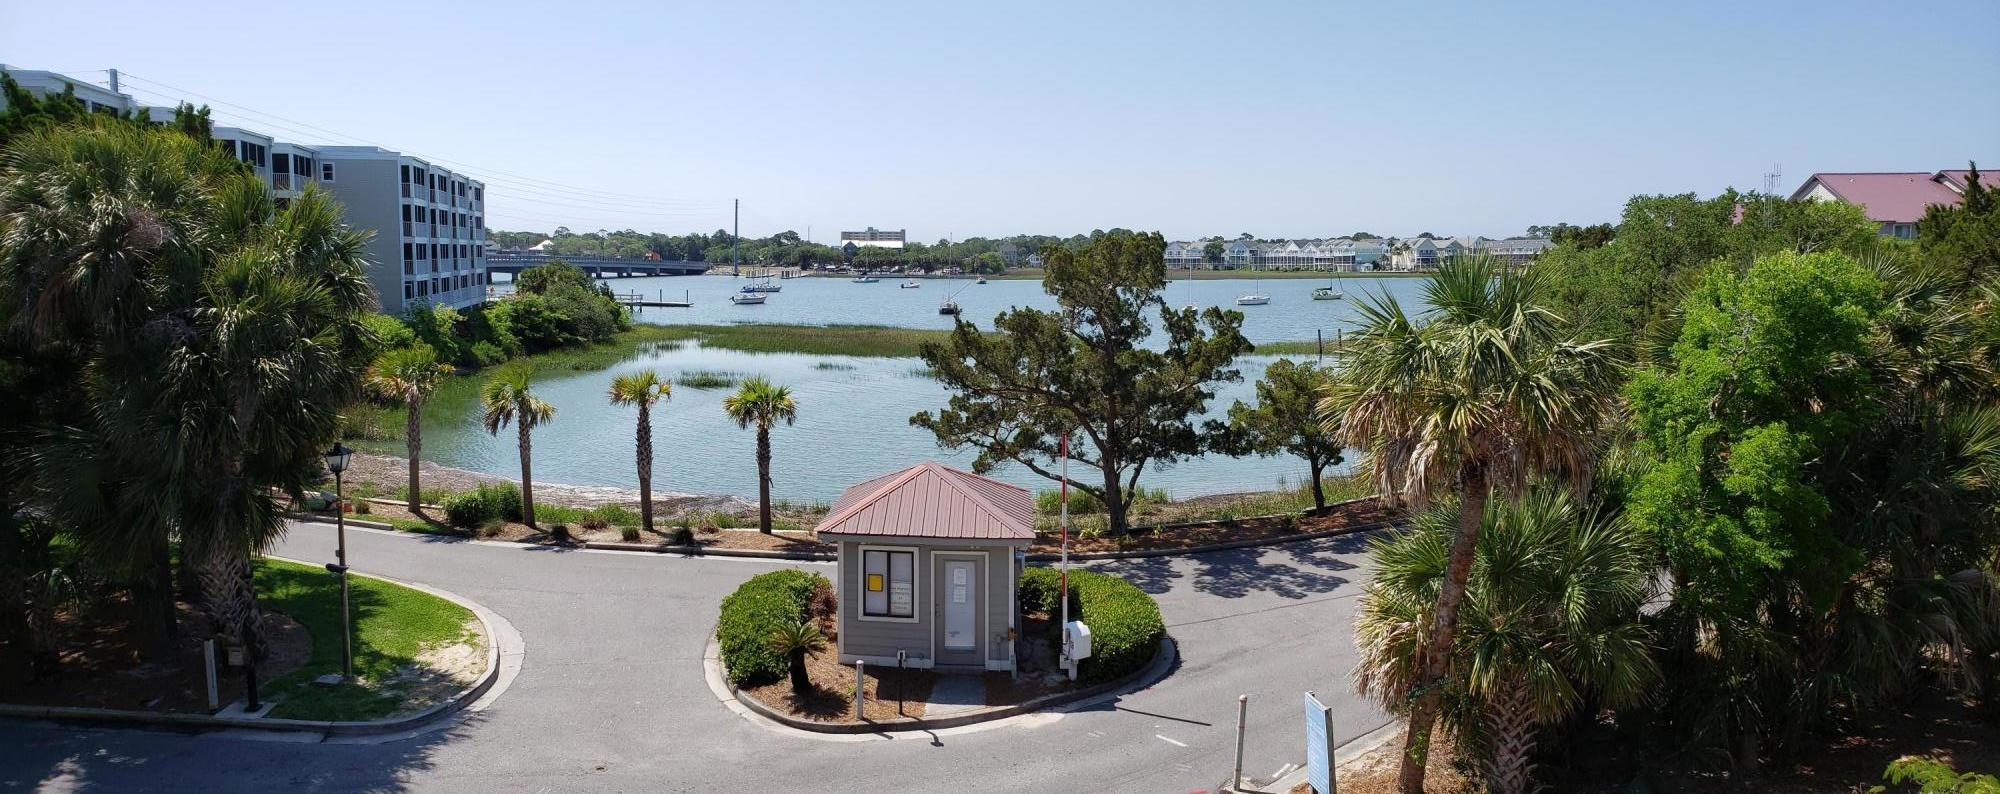 Mariners Cay Homes For Sale - 16 Mariners Cay, Folly Beach, SC - 3